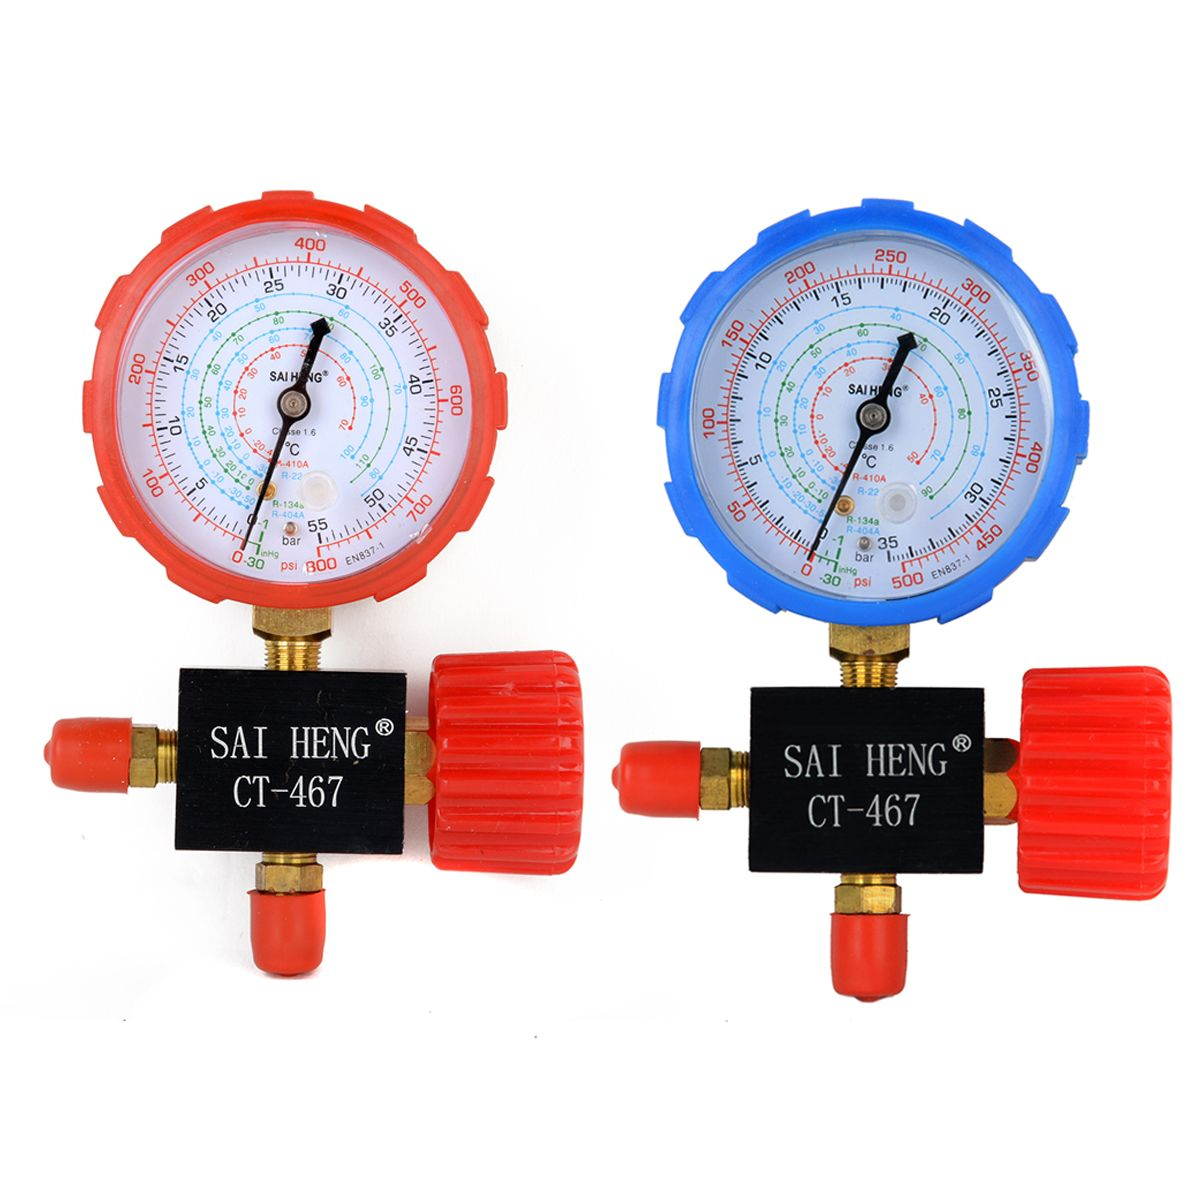 1pc/2pcs Good Air Conditioning Manifold Gauge High/Low Pressure R134a R404a R22 R410a Refrigerant Manometer With Valve Mayitr